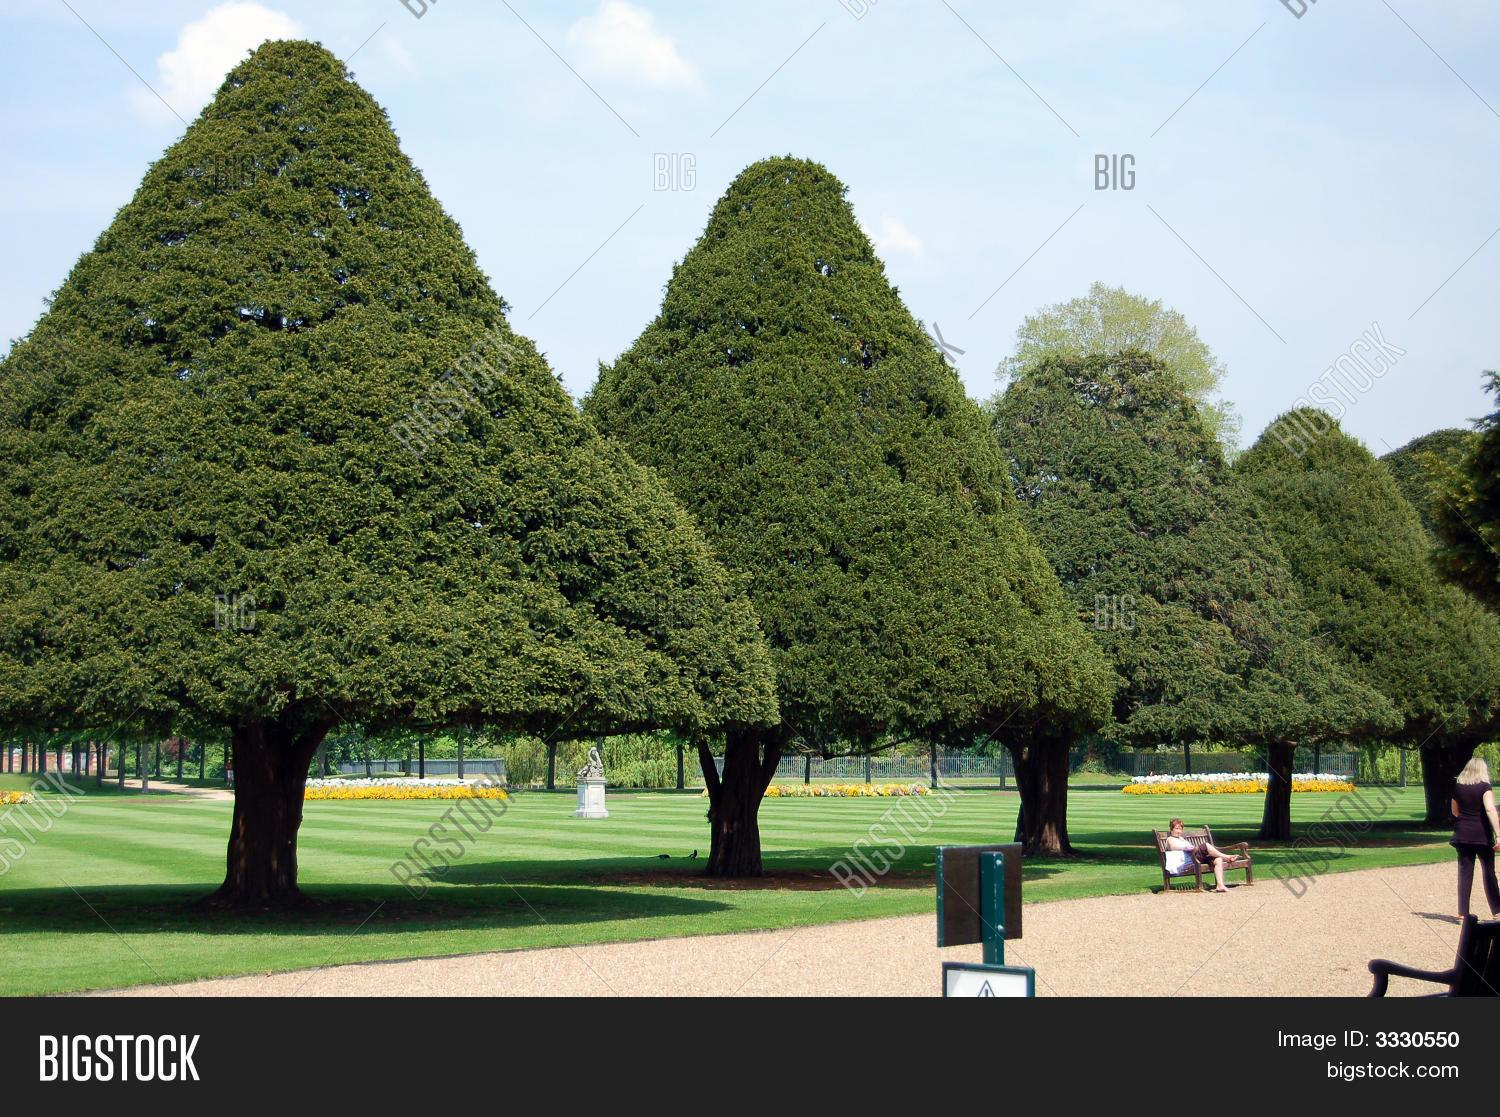 Cone Shaped Trees Bigstock